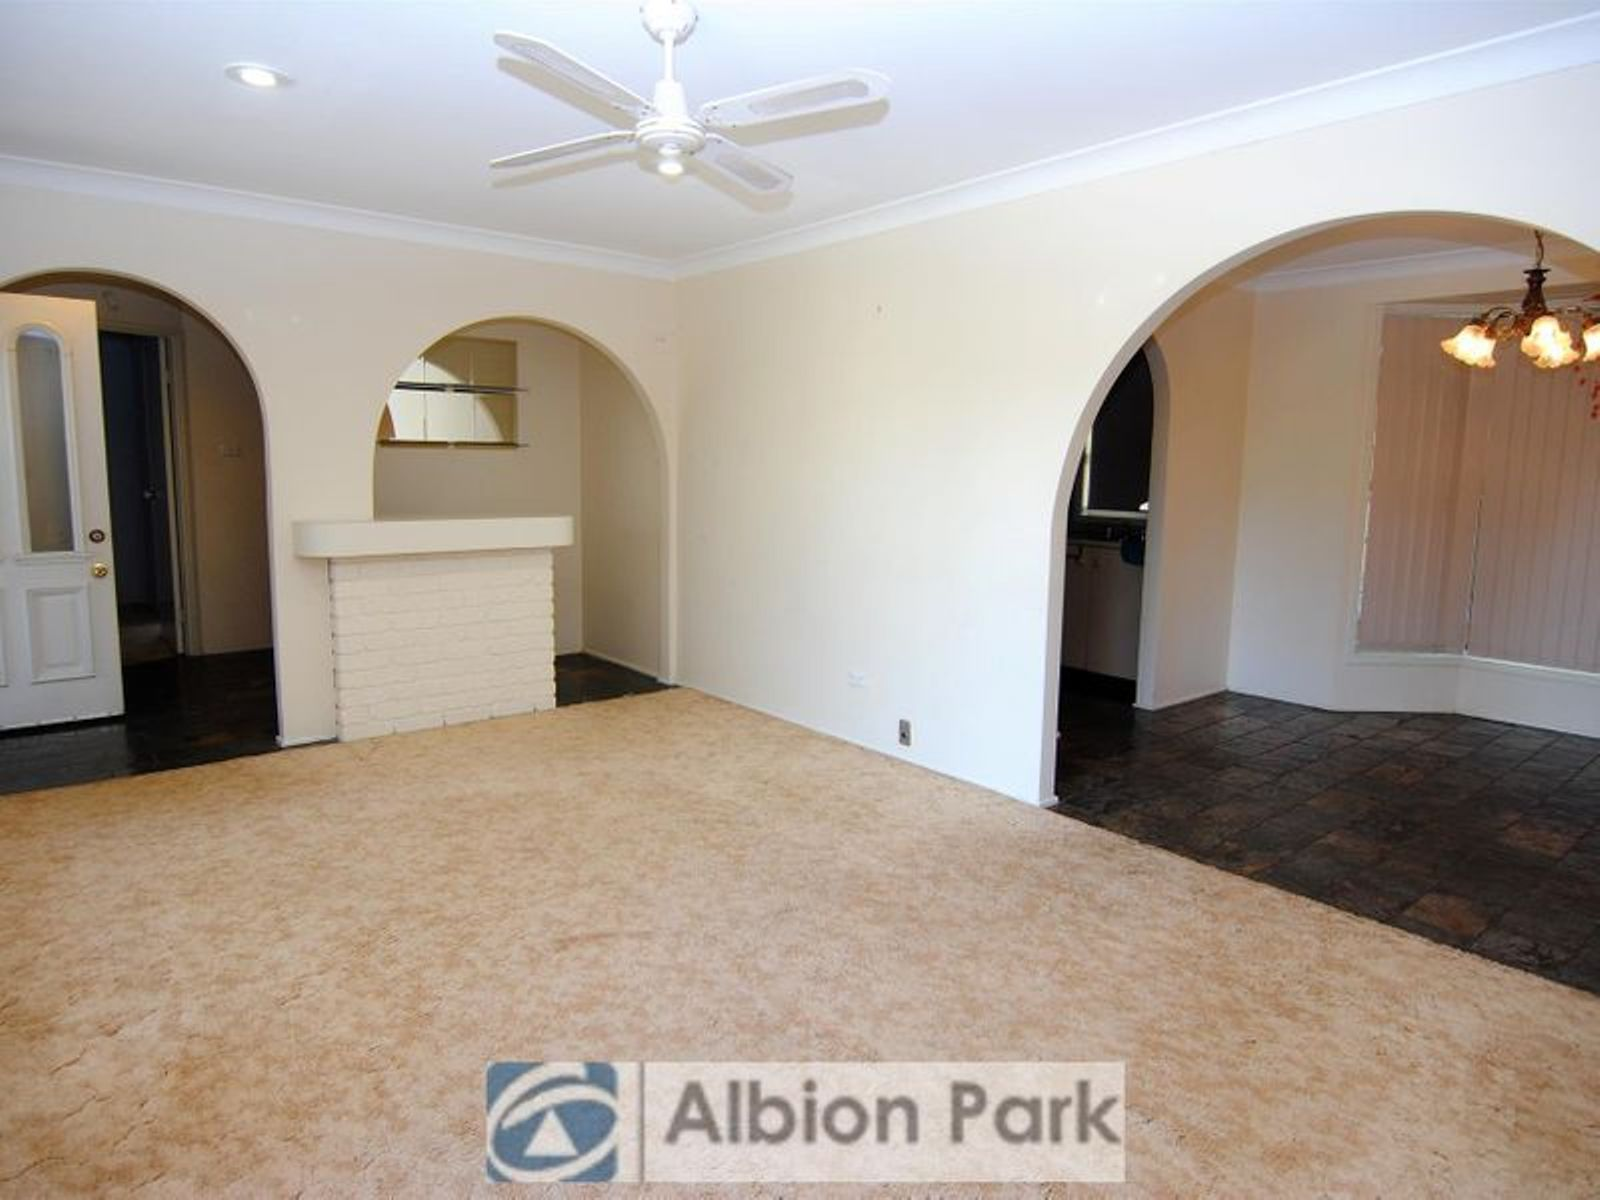 House for Lease - FN First National Real Estate Albion Park